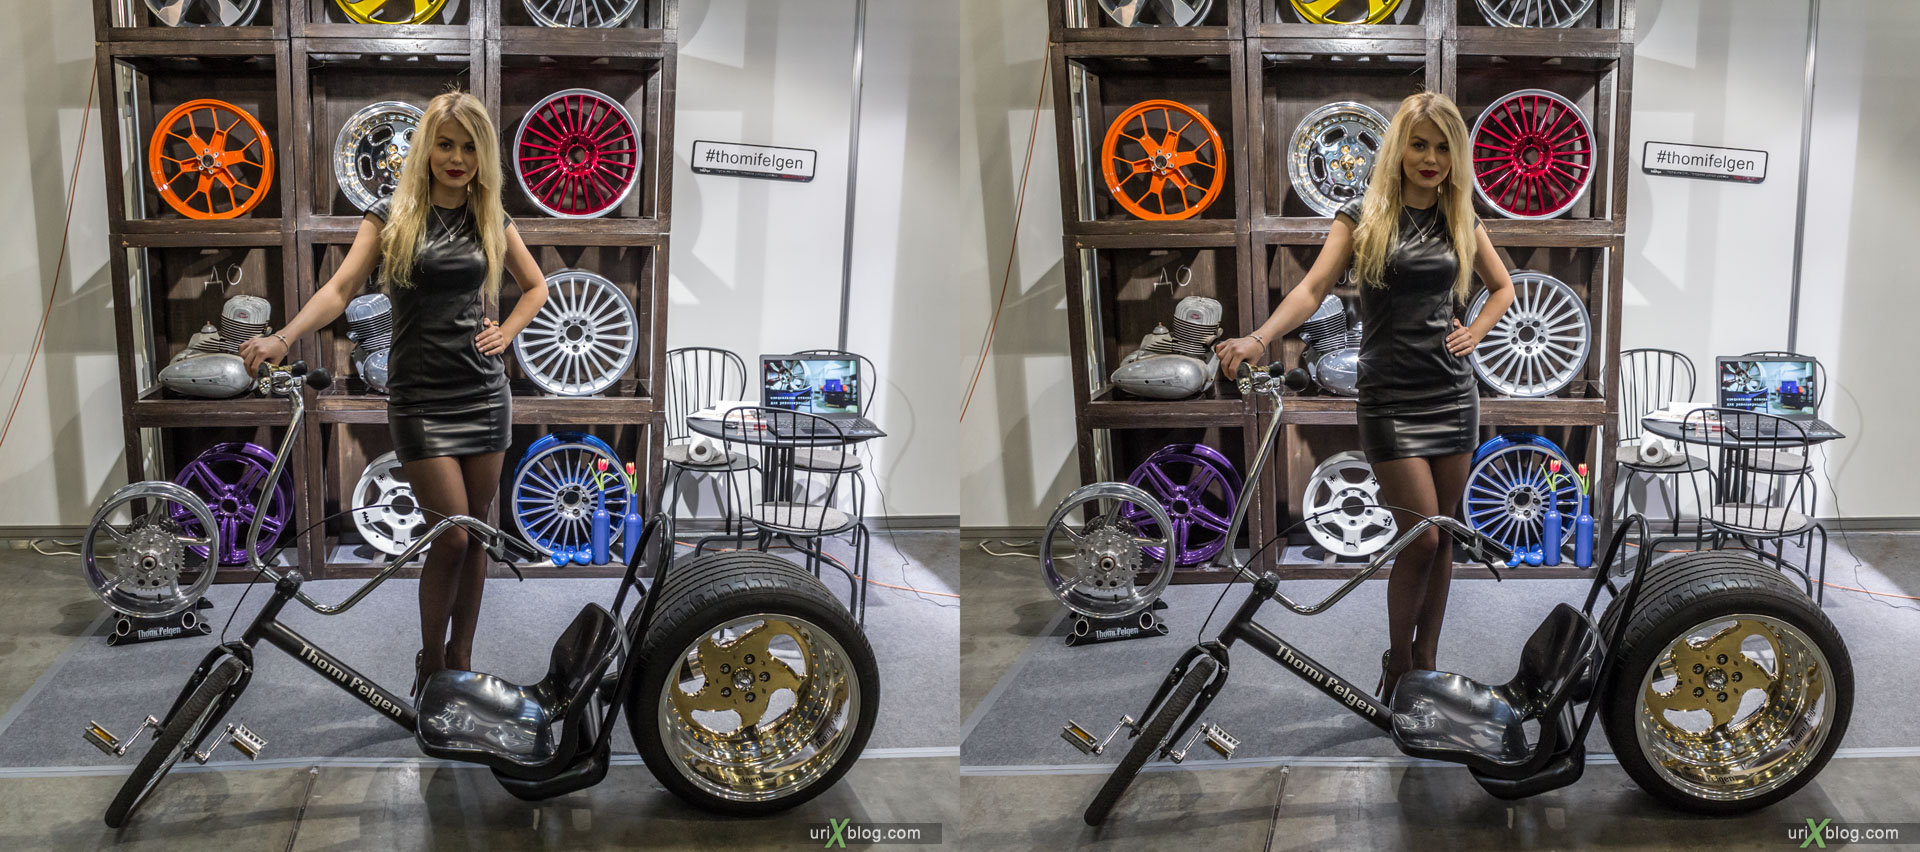 Moto park, exhibition, girl, model, Crocus Expo, Moscow, Russia, 3D, stereo pair, cross-eyed, crossview, cross view stereo pair, stereoscopic, 2015